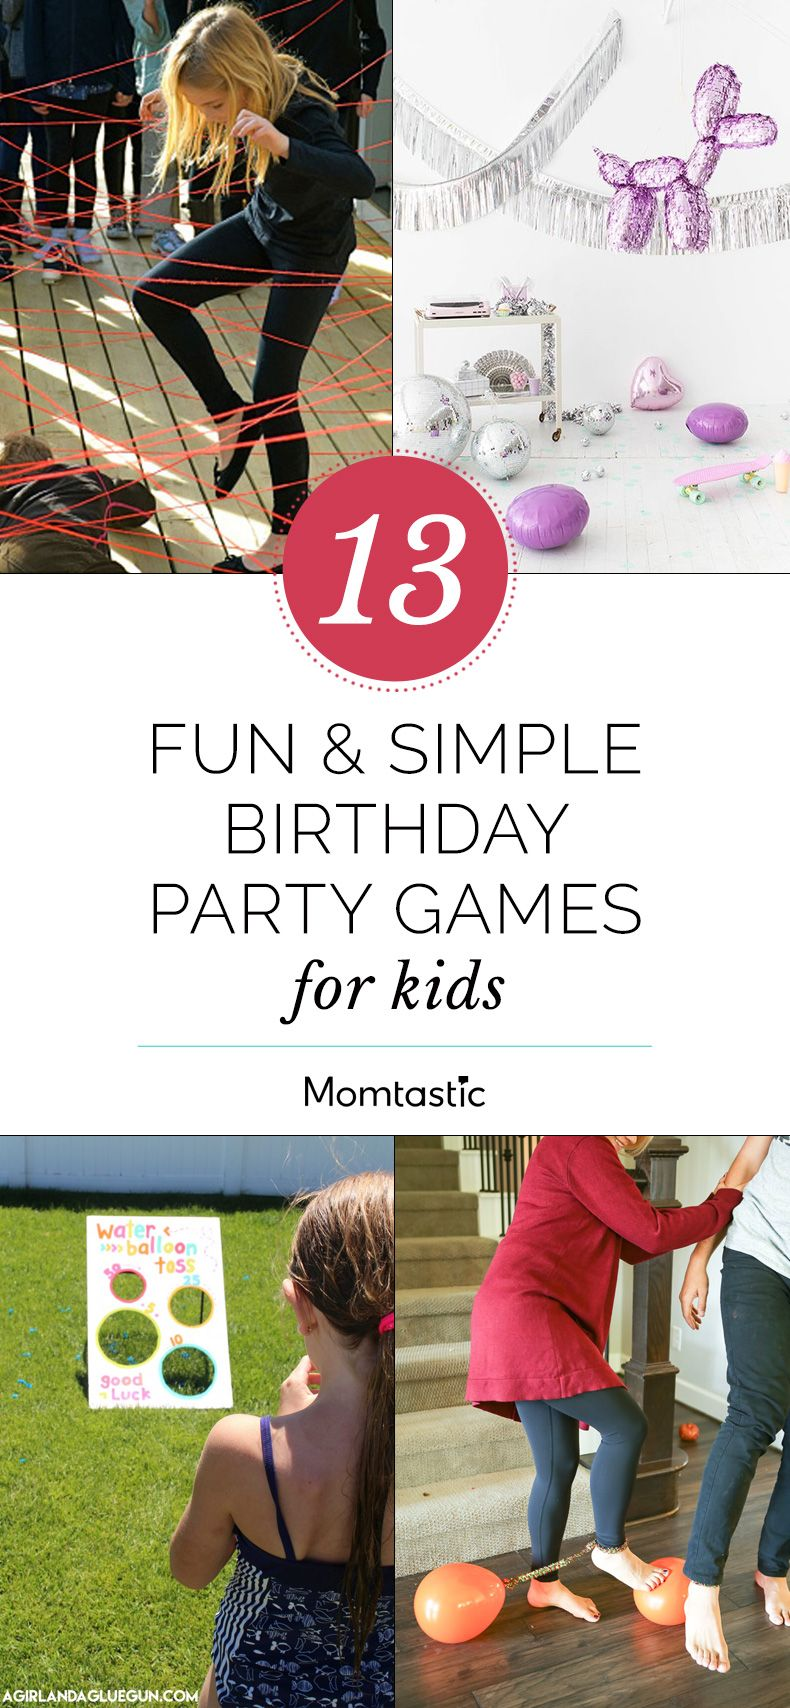 13 Fun & Simple Party Games For Kids | Birthday party games, Party ...